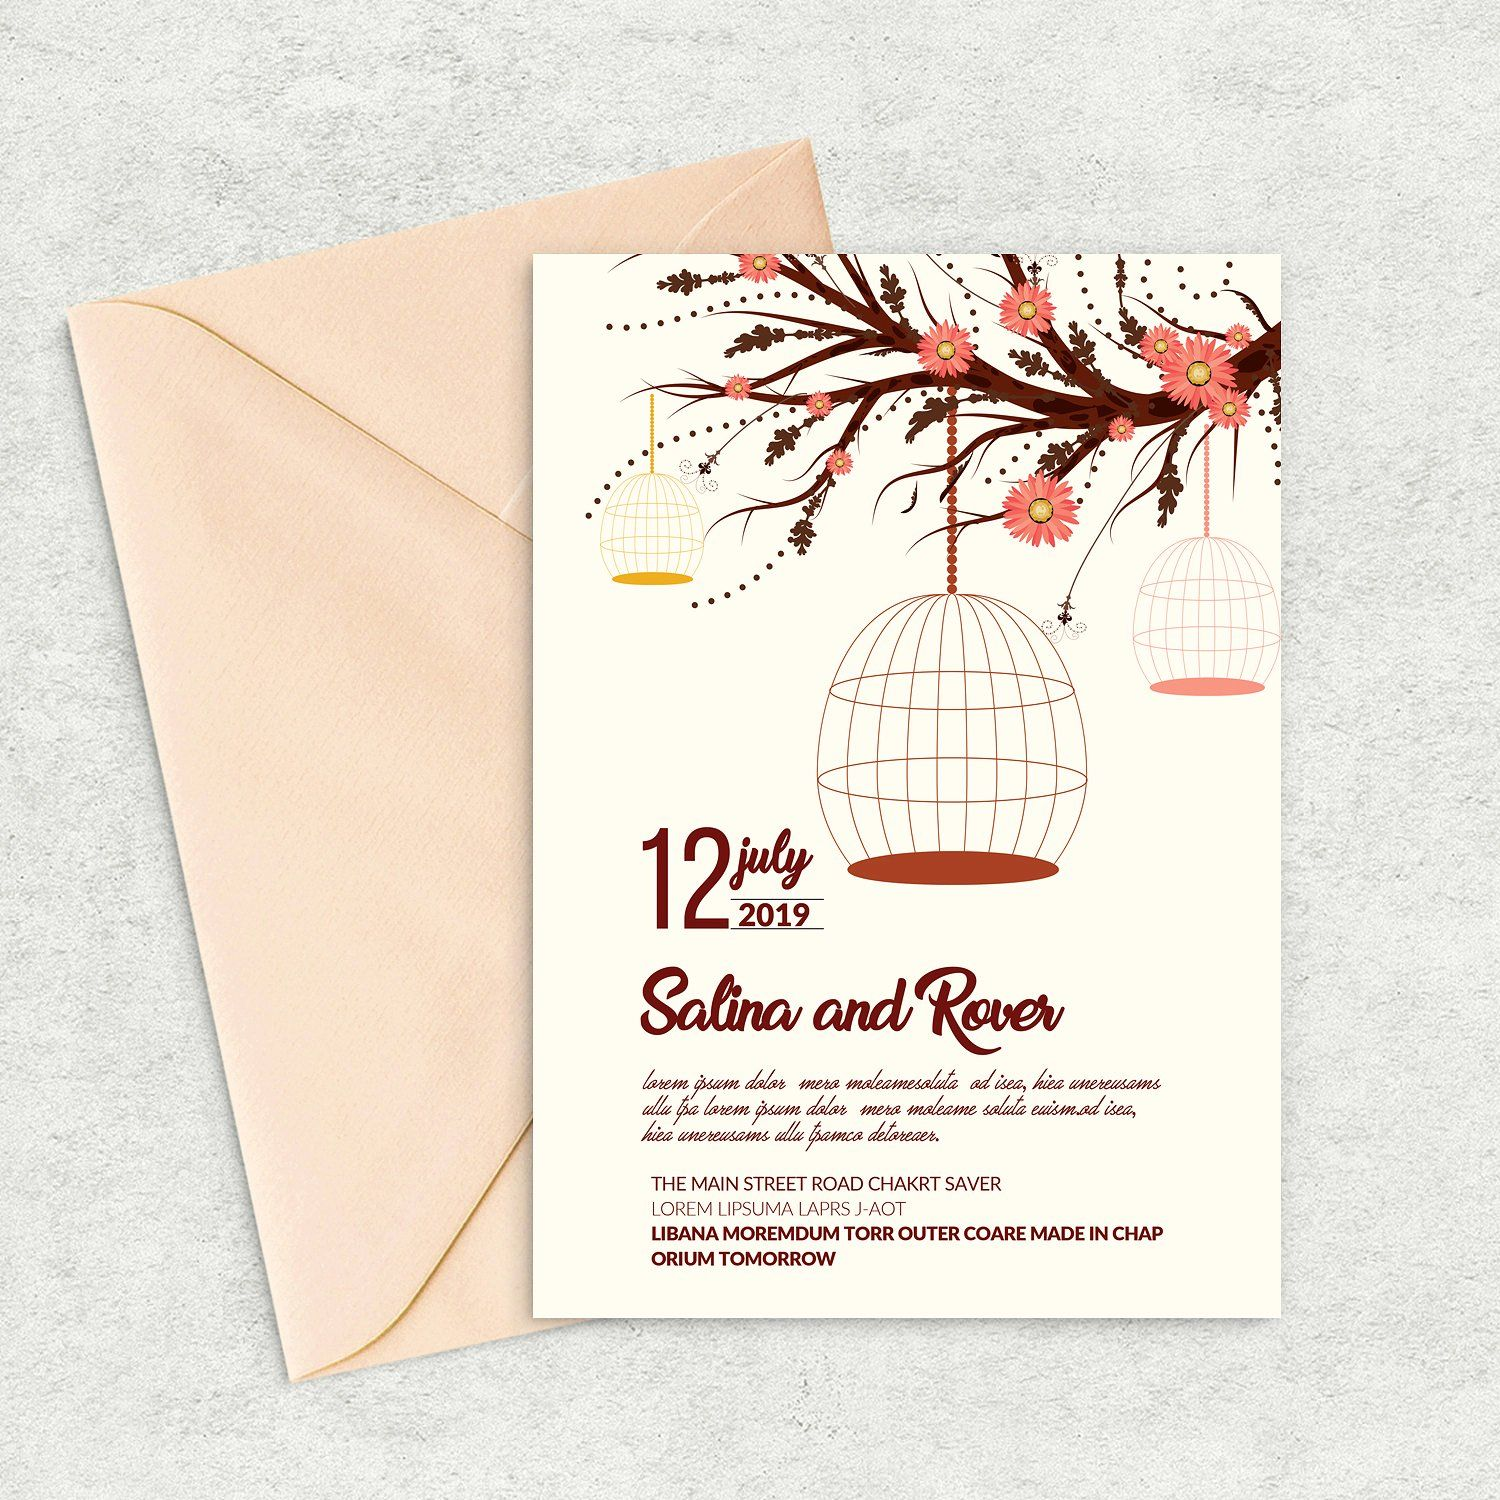 Save The Date Card Invite Template By Design Up On Creativemarket Easy To Customize Fully Layered If Y Save The Date Cards Wedding Invitation Card Template Fun Wedding Invitations